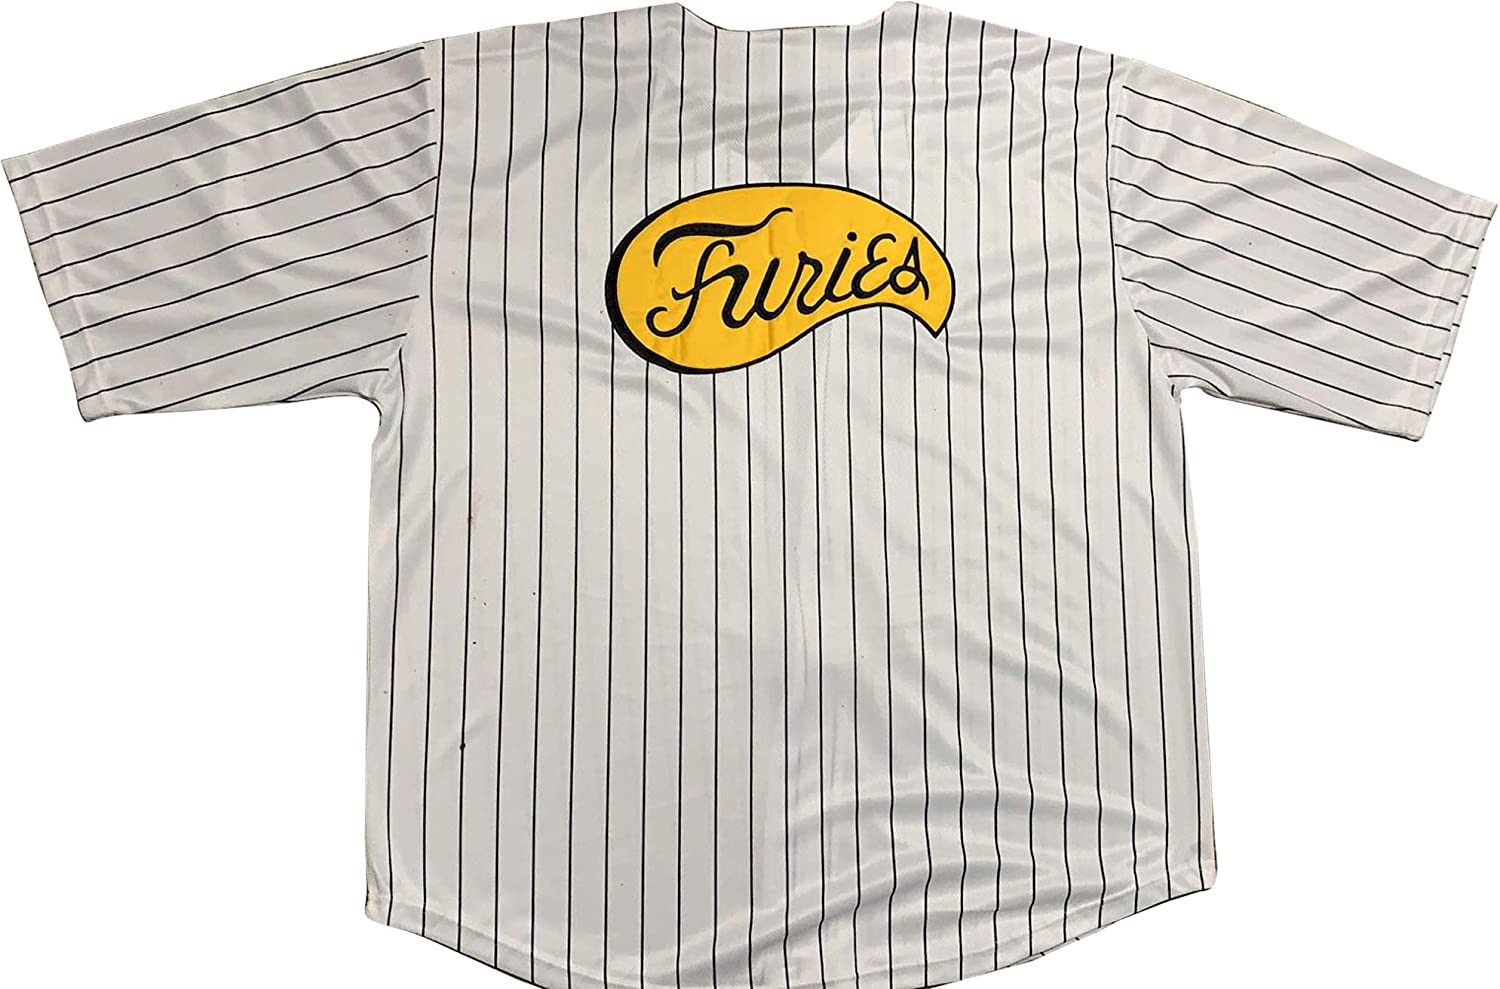 Sales results No. 1 The Warriors Baseball Fort Worth Mall Furies Jersey 2 Pinstriped Stitch